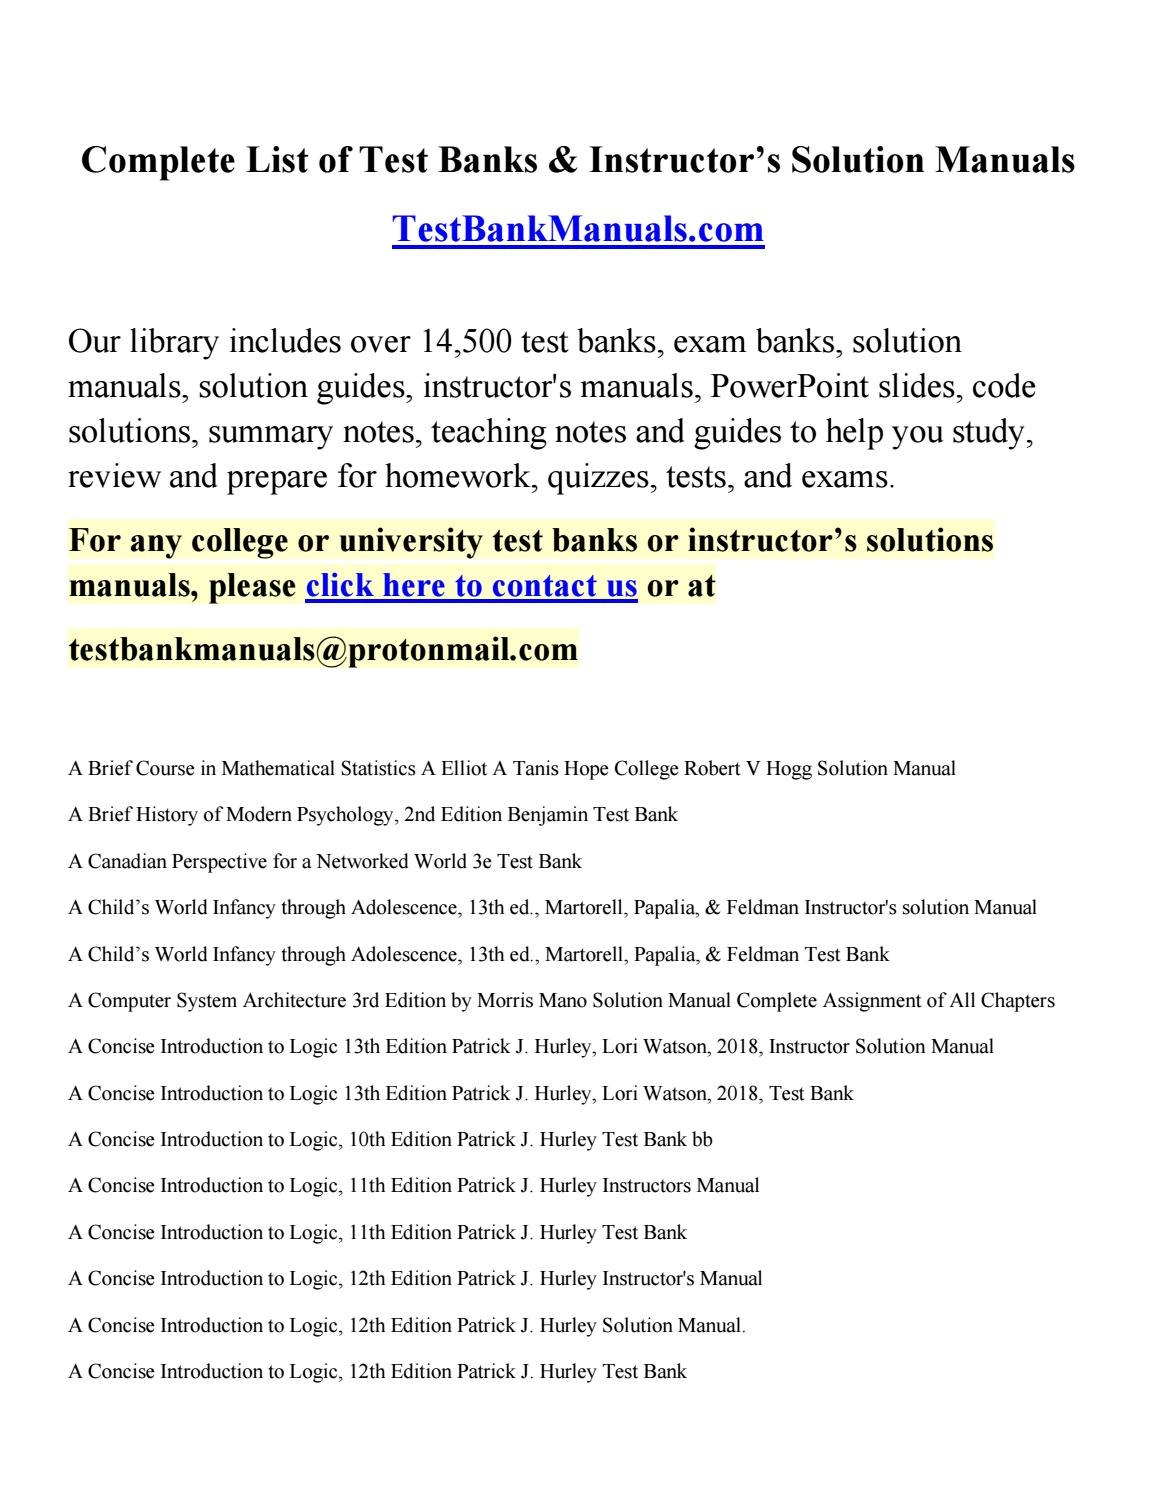 Complete List of Test Banks & Solutions Manuals at TestBanksManual.com by  test-bank-solution-manuals - issuu